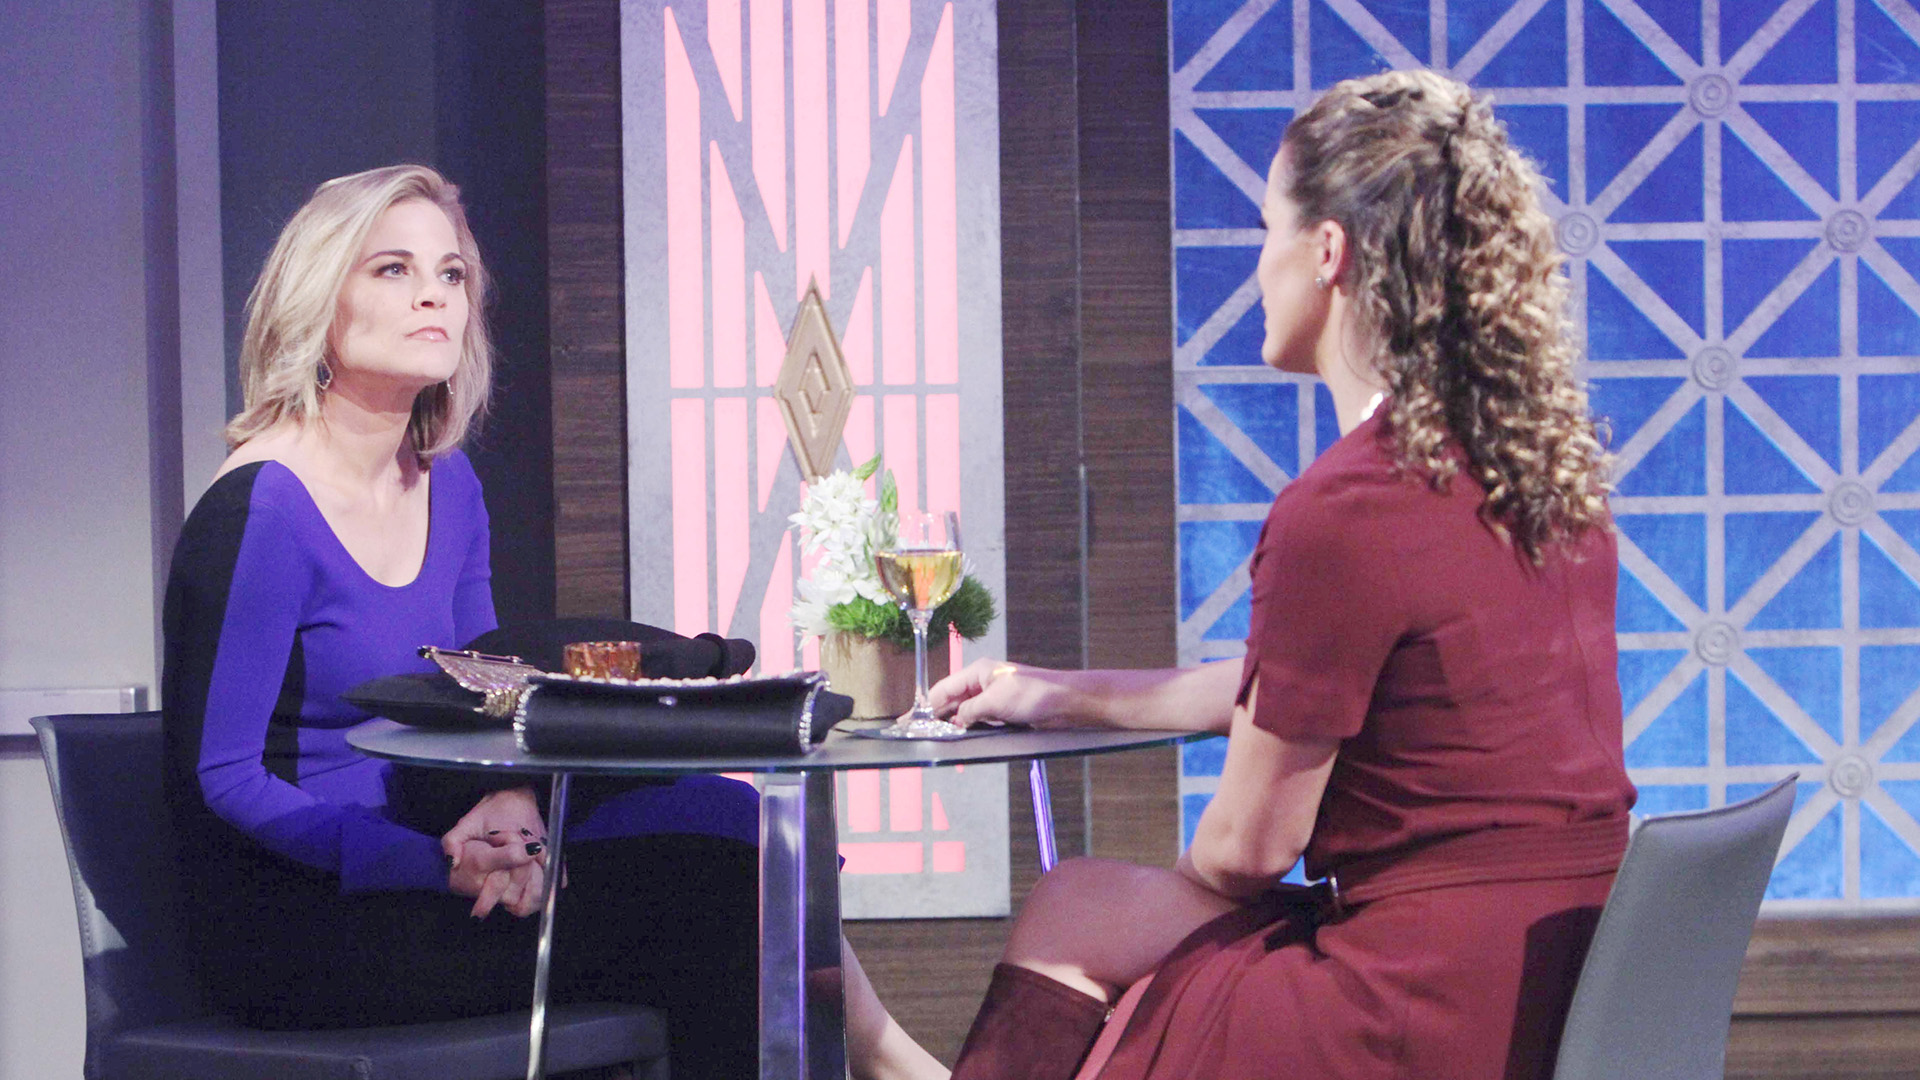 Phyllis and Chelsea's game of cat and mouse heats up!